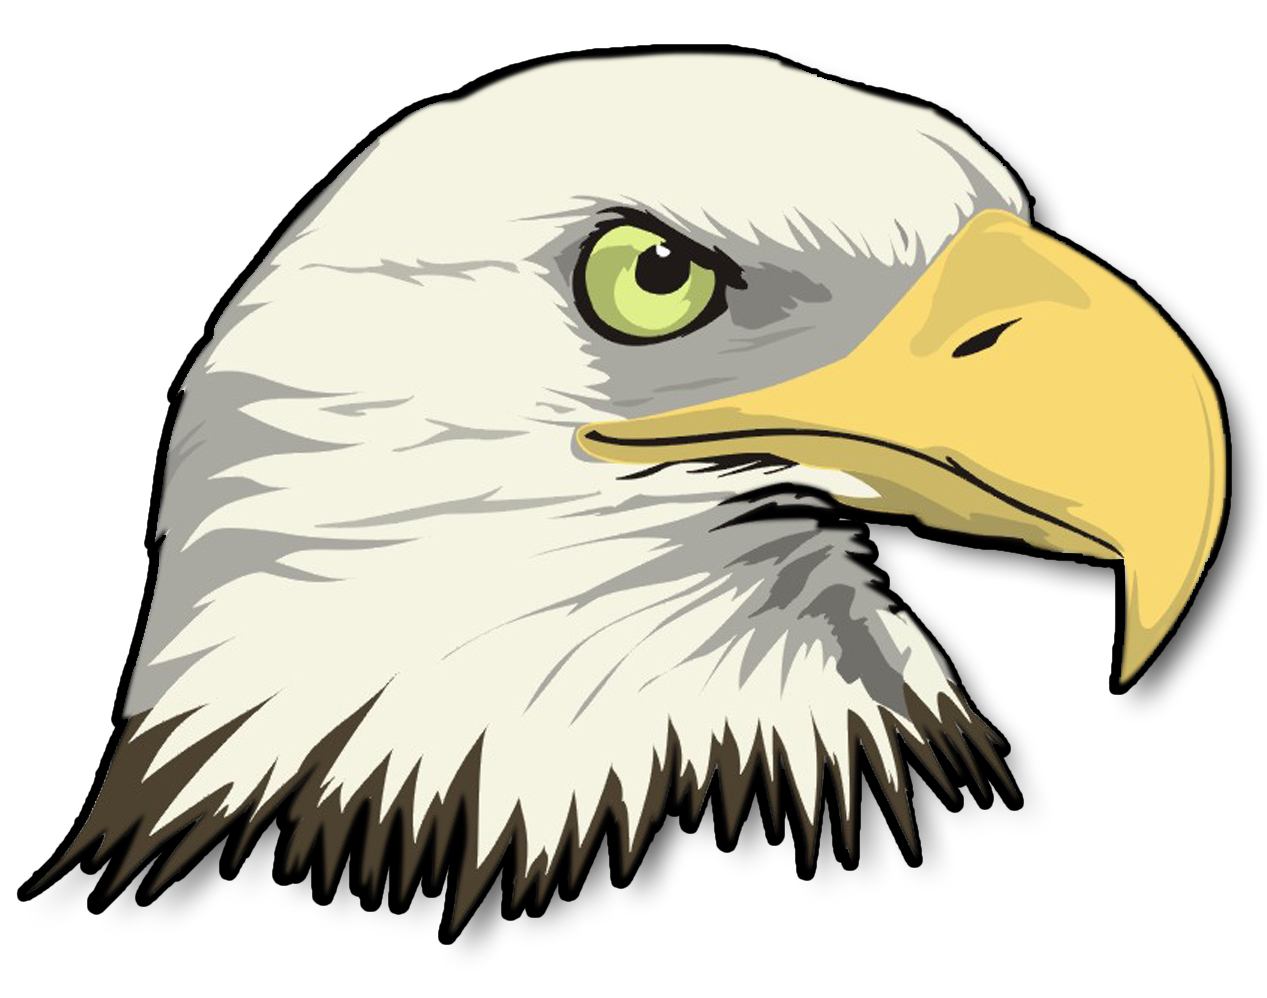 Eagle images free clipart vector free download Free Bald Eagle Clip Art, Download Free Clip Art, Free Clip Art on ... vector free download